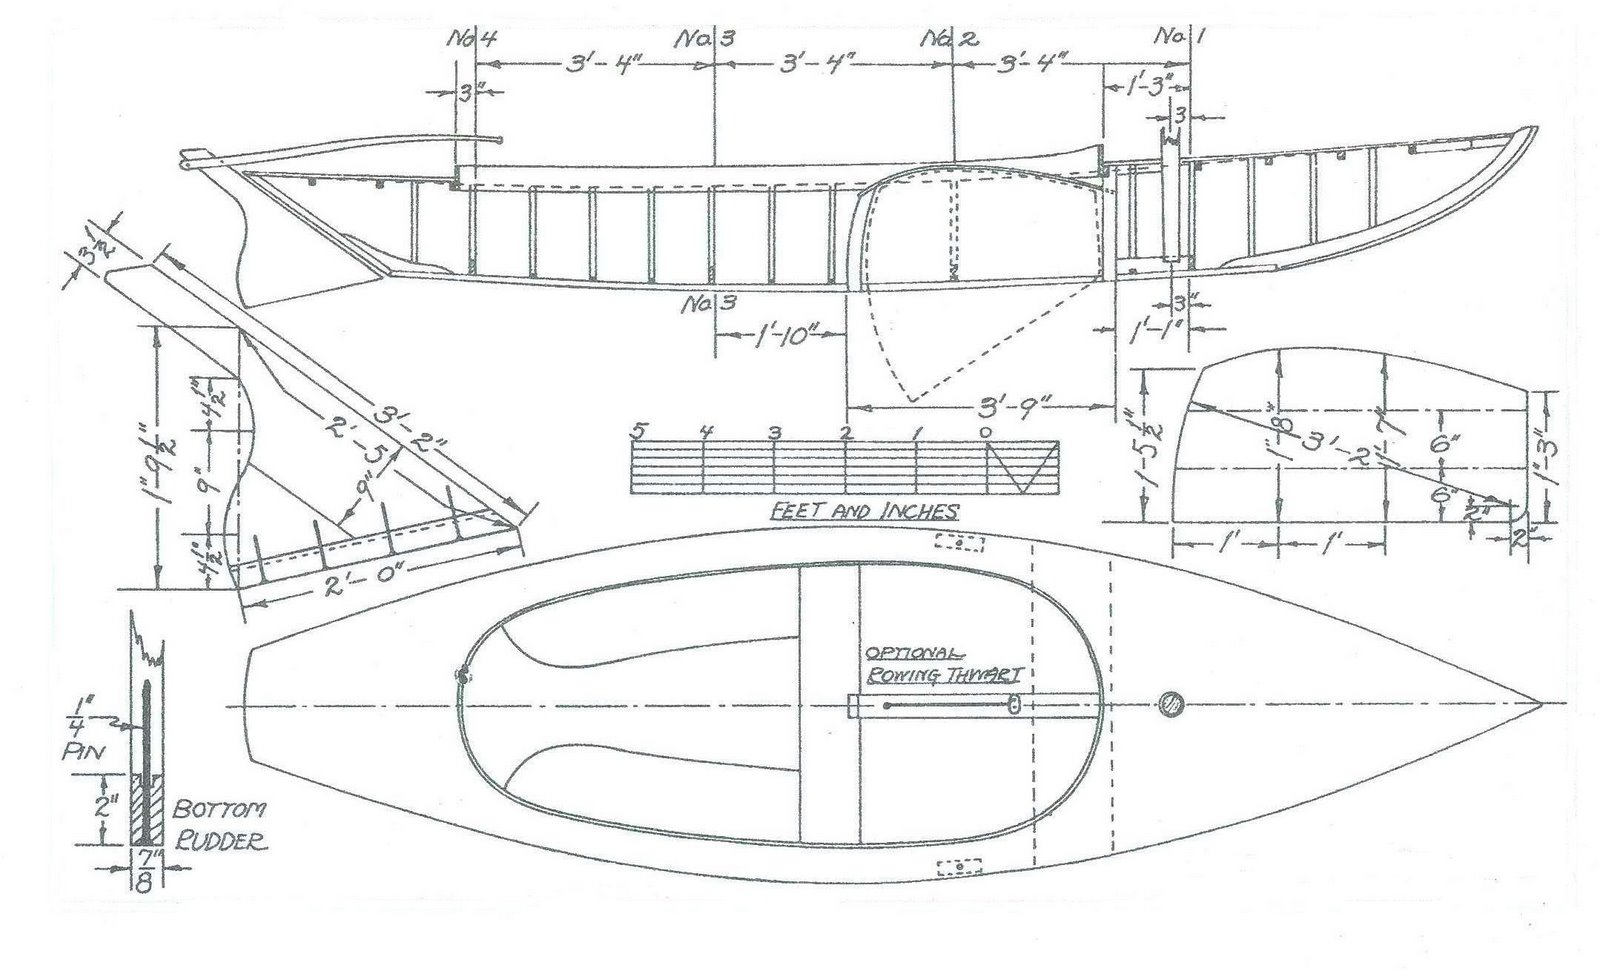 Jay: Wood Boat Diagrams How to Building Plans